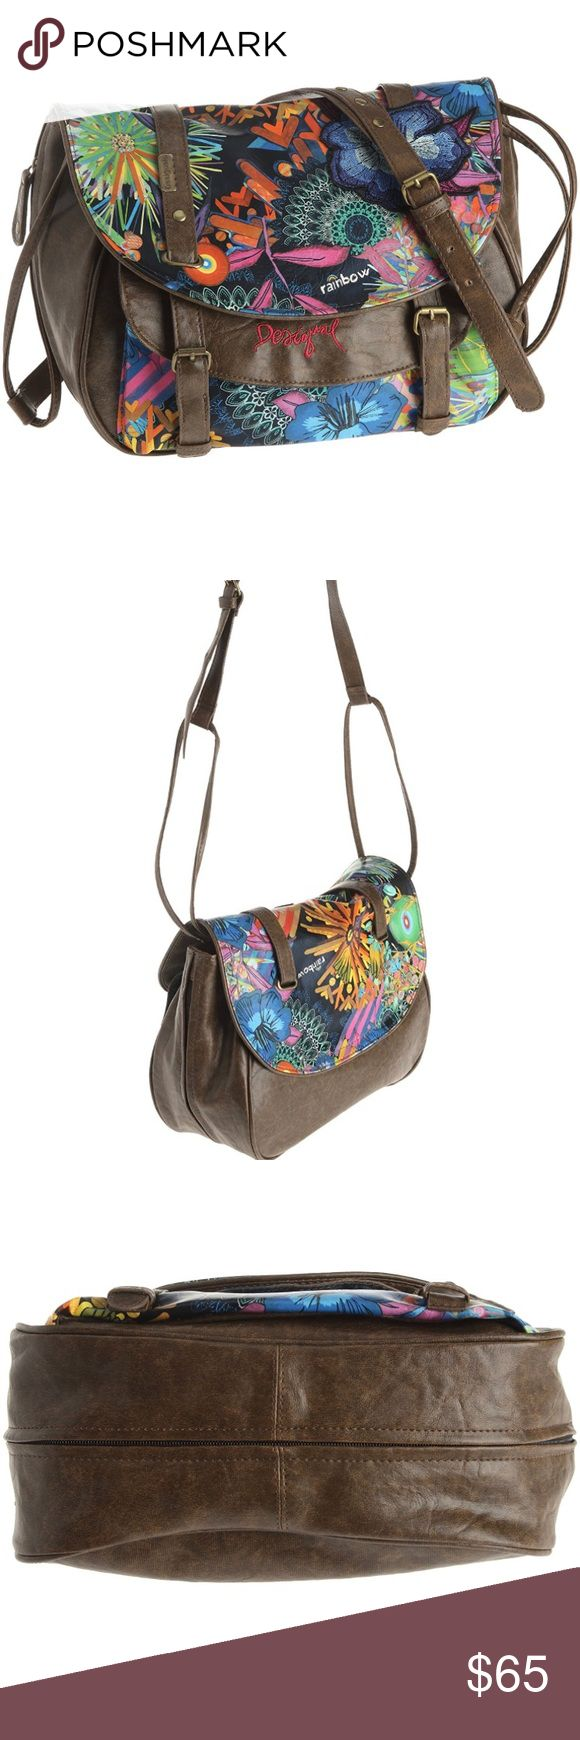 Desigual Bols Bandolera Stella Bag New Desigual brand. The tag fastener is still on the bag but the tag fell off. This is new, never used. Gorgeous colorful print! You will get so many compliments with this bag! Currently on Amazon for $114 Desigual Bags Shoulder Bags